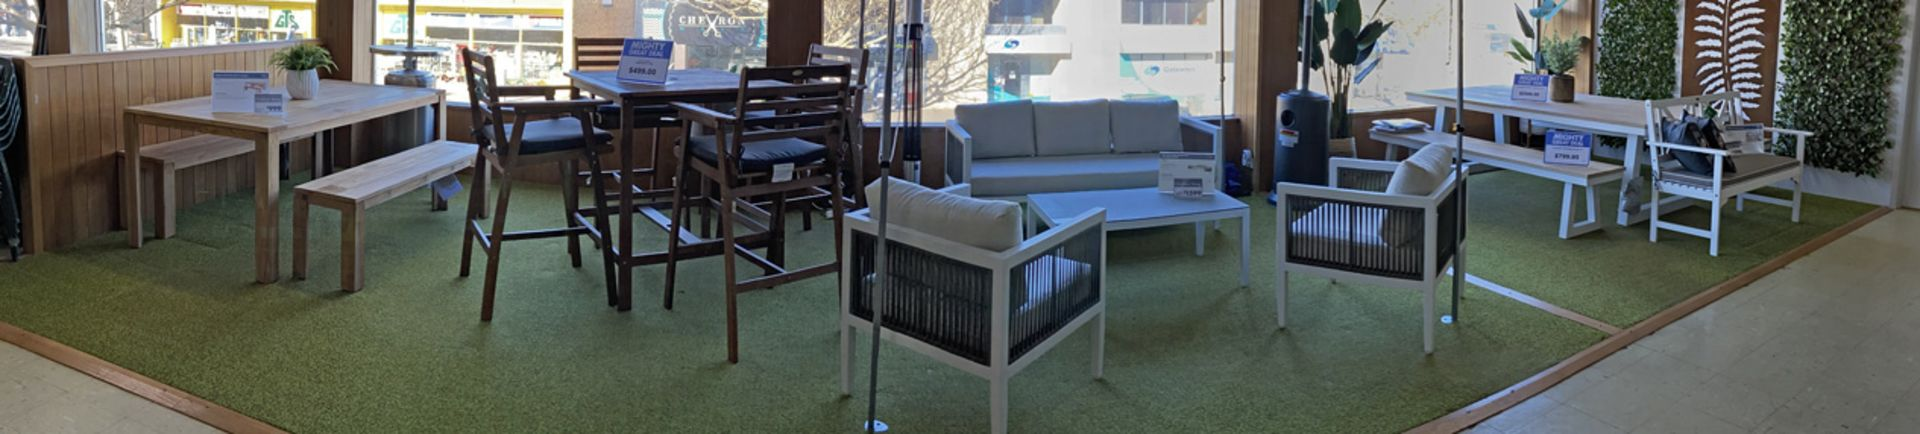 Come in and see our new outdoor furniture upstairs showroom. We have a great range of outdoor furniture.